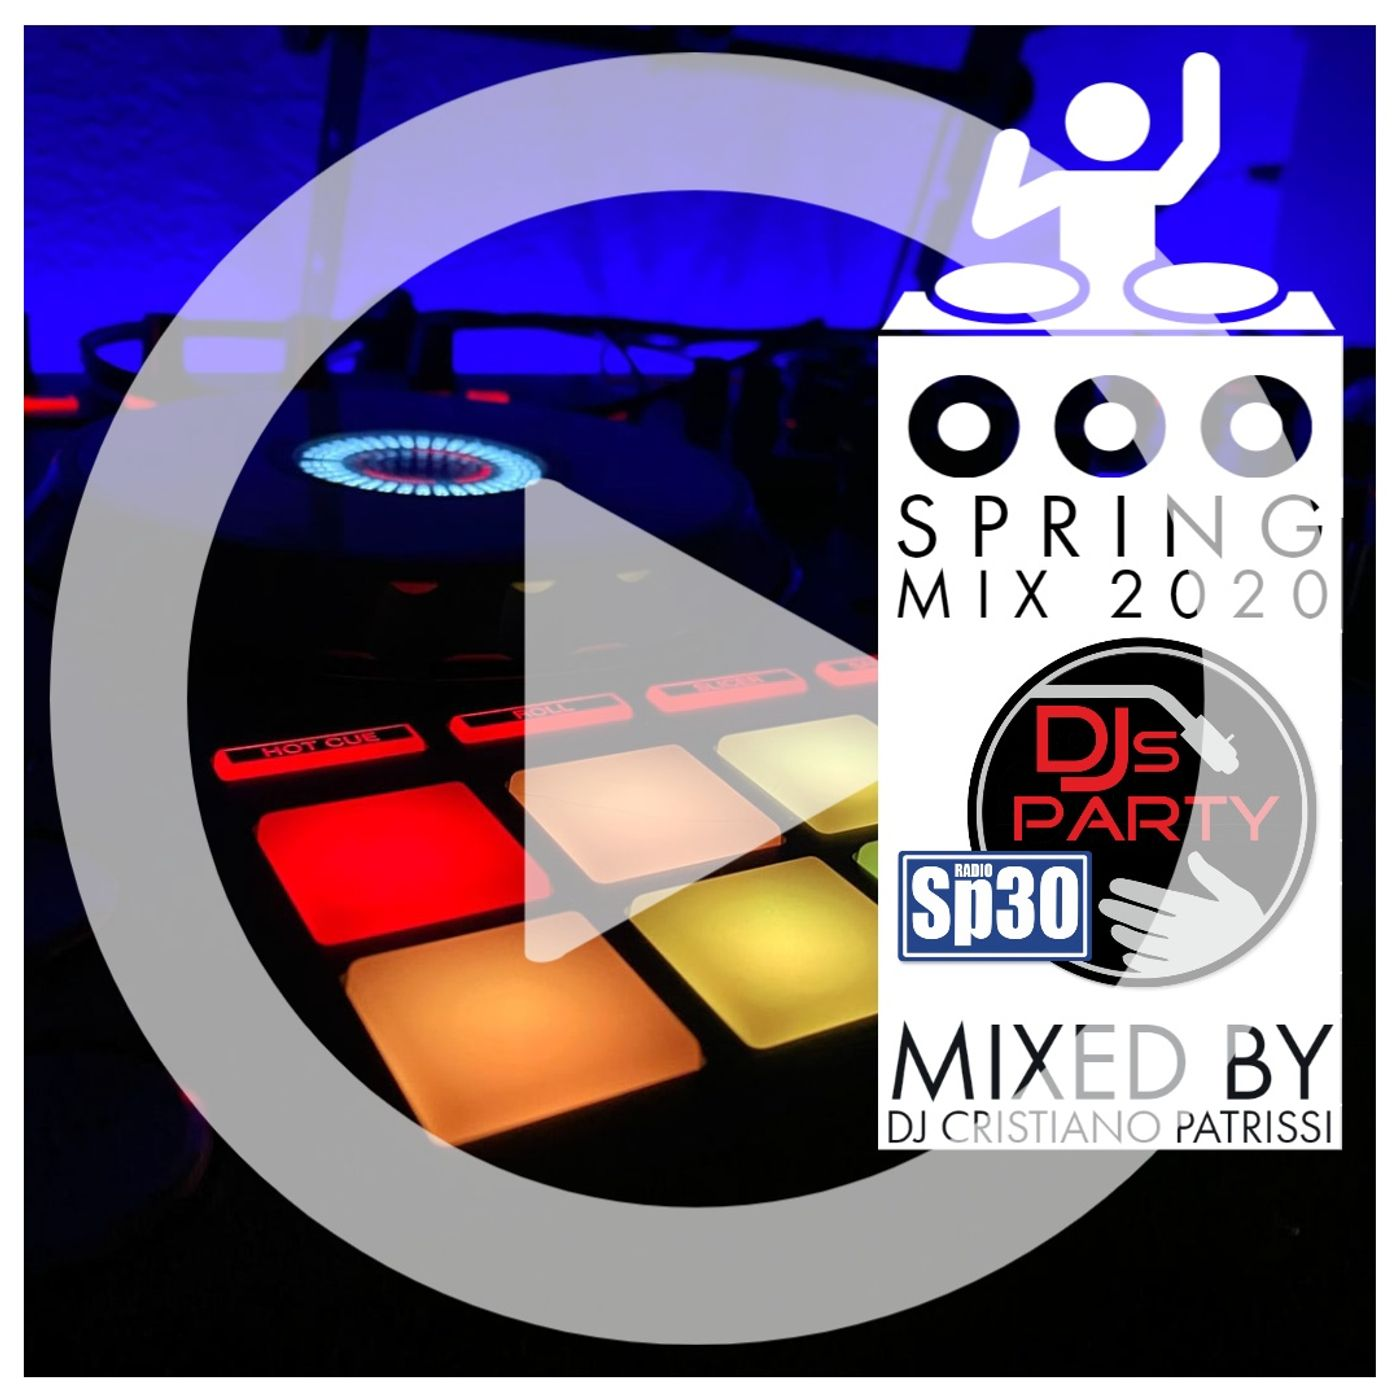 #djsparty - ST.2 EP.25 - Spring 2020